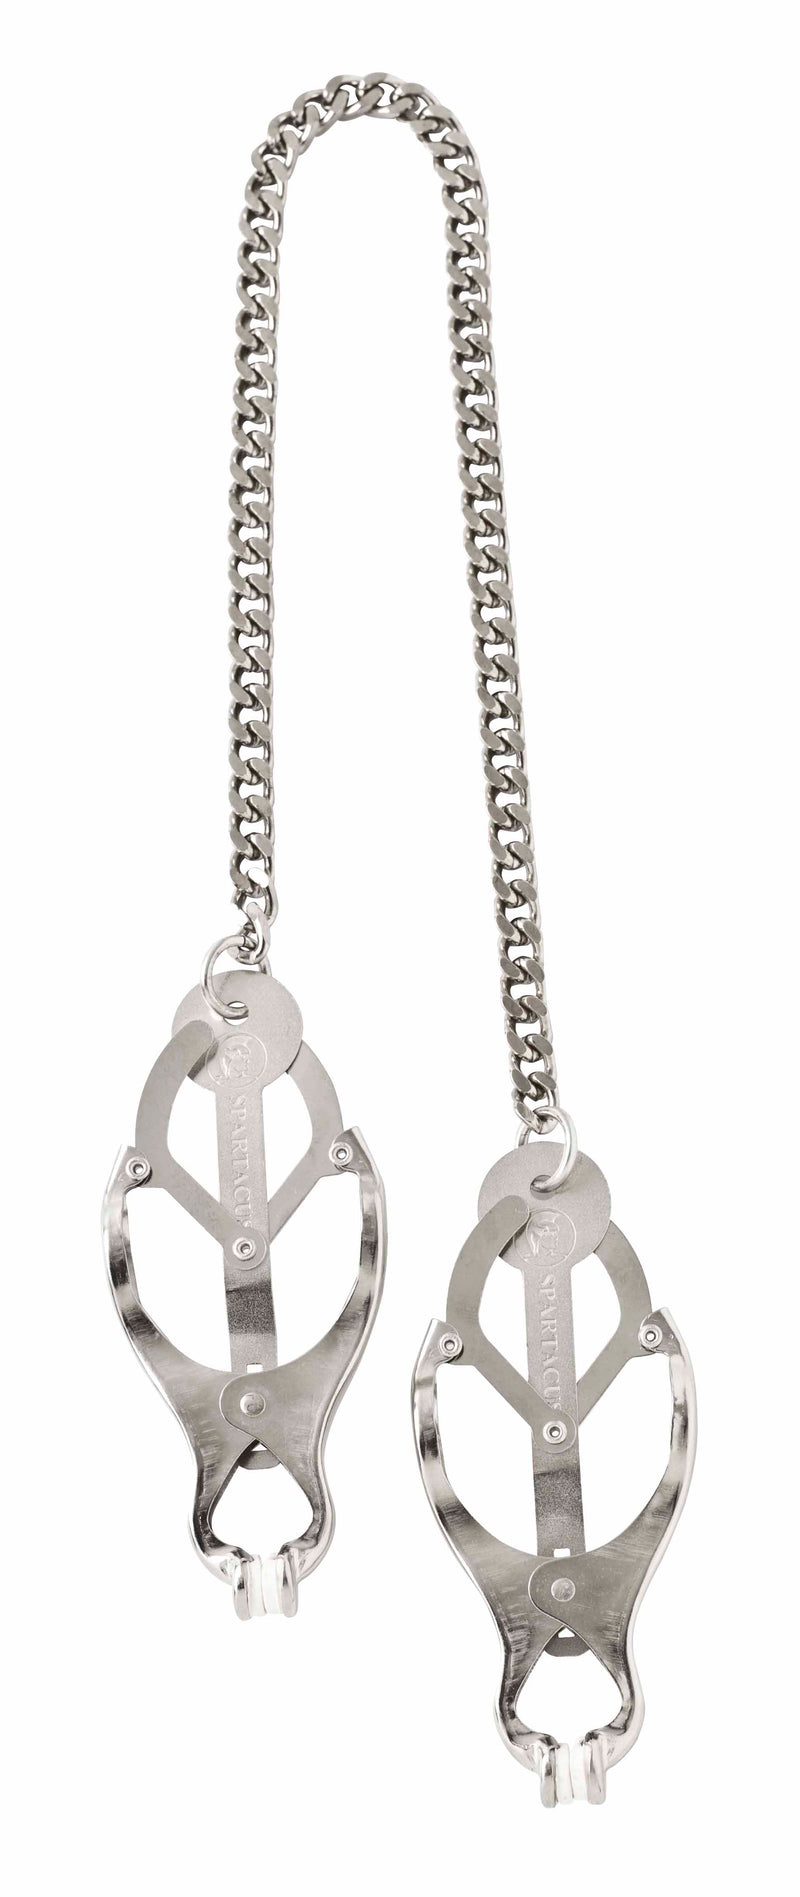 LITE LINE NIPPLE CLAMPS